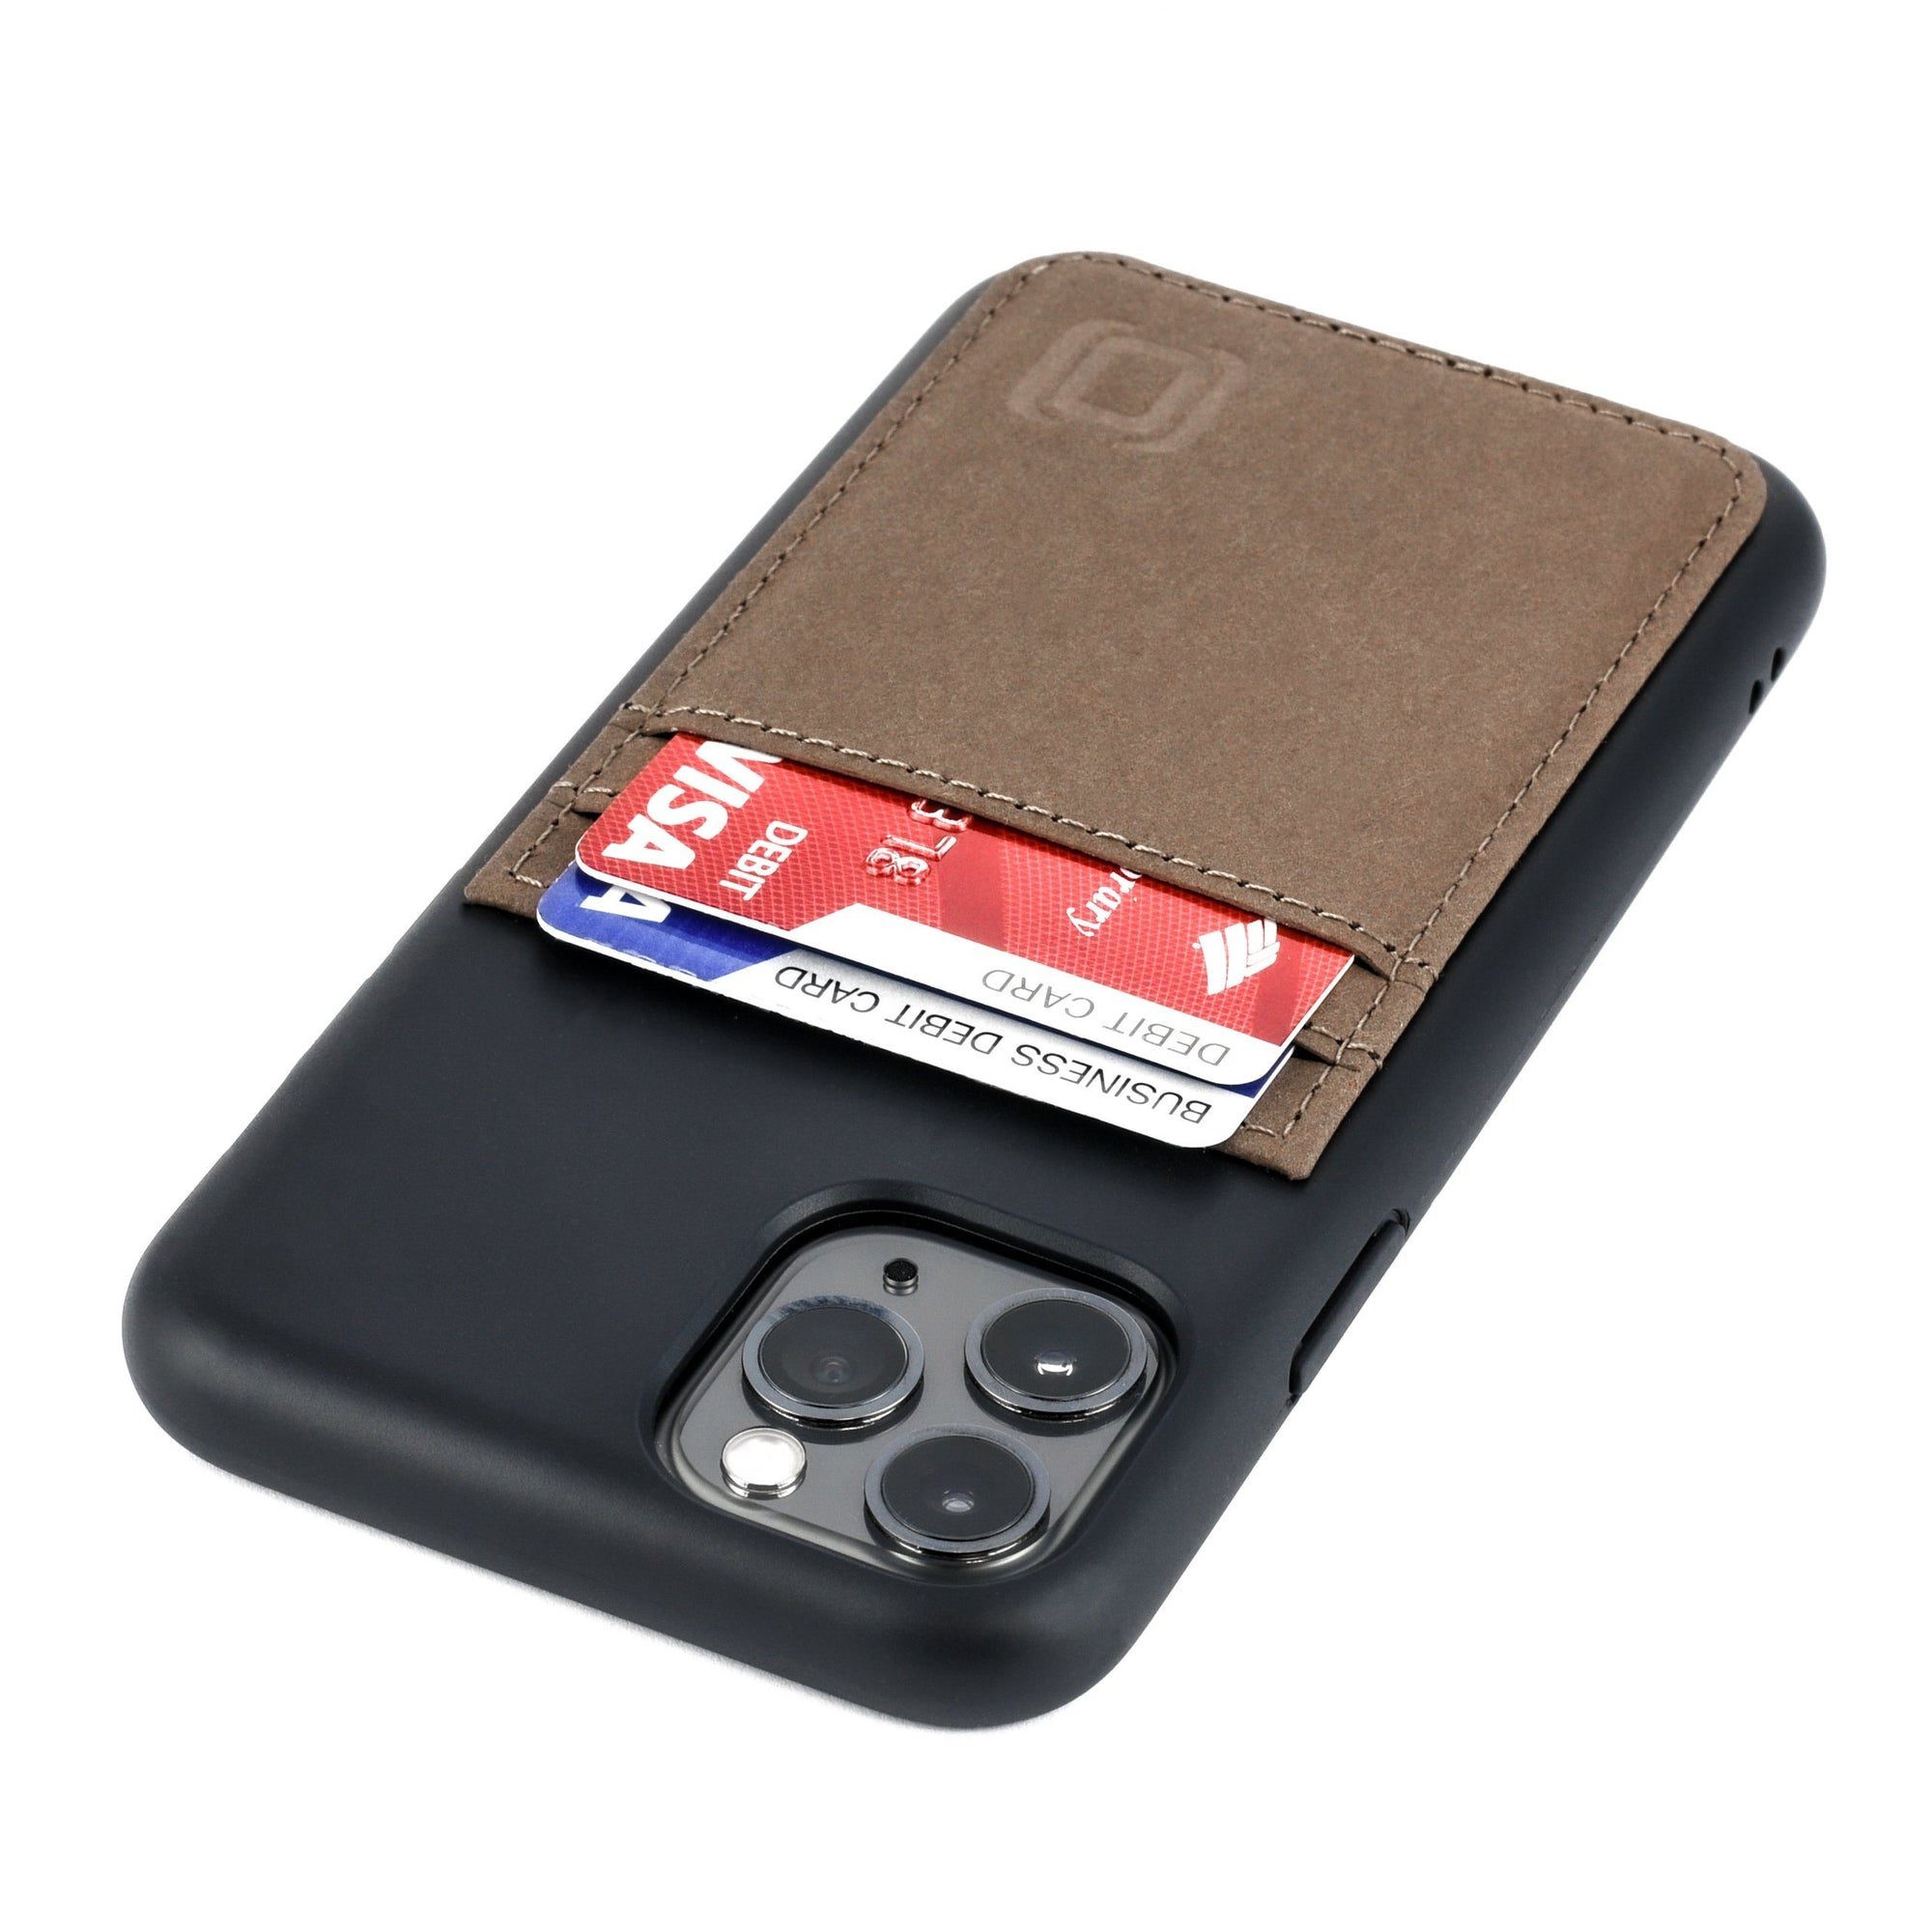 Bio M2B Wallet Case iPhone Case Dockem iPhone 11 Pro Black & Tan